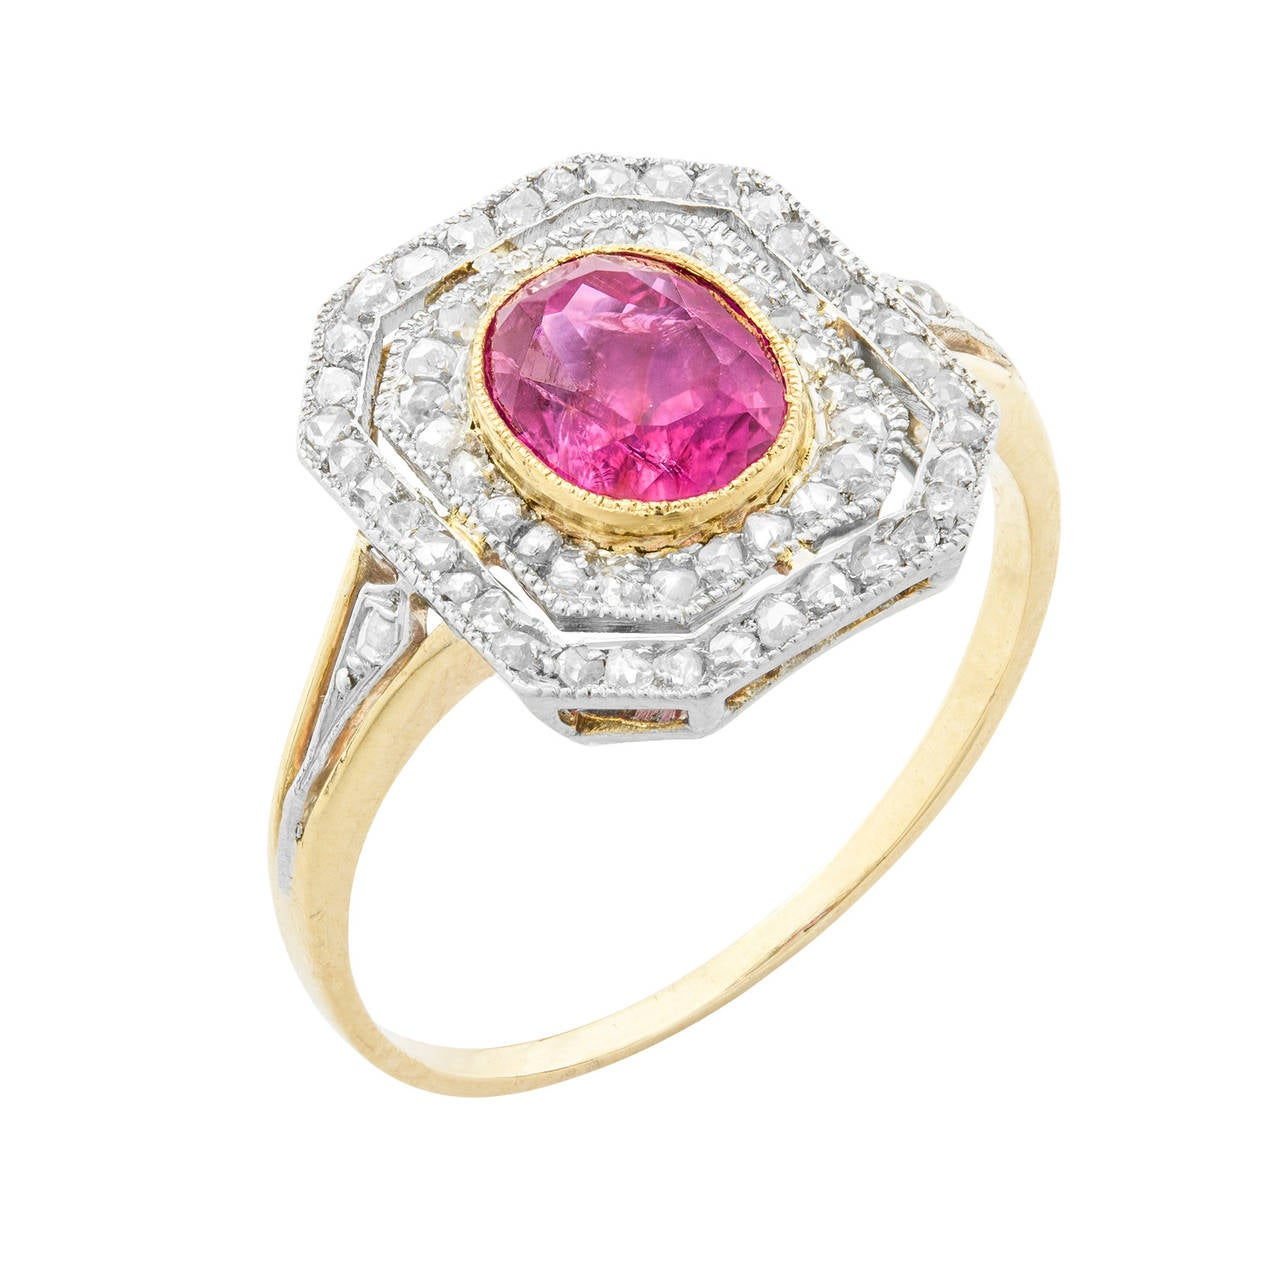 A ruby and diamond oval tablet cluster ring, the oval ruby measuring 7.2 x 5.6mm, estimated to weigh 1.2 carats, in a gold millegrain setting surrounded by a double border of rose-cut diamonds with a daylight inbetween to a platinum mount with